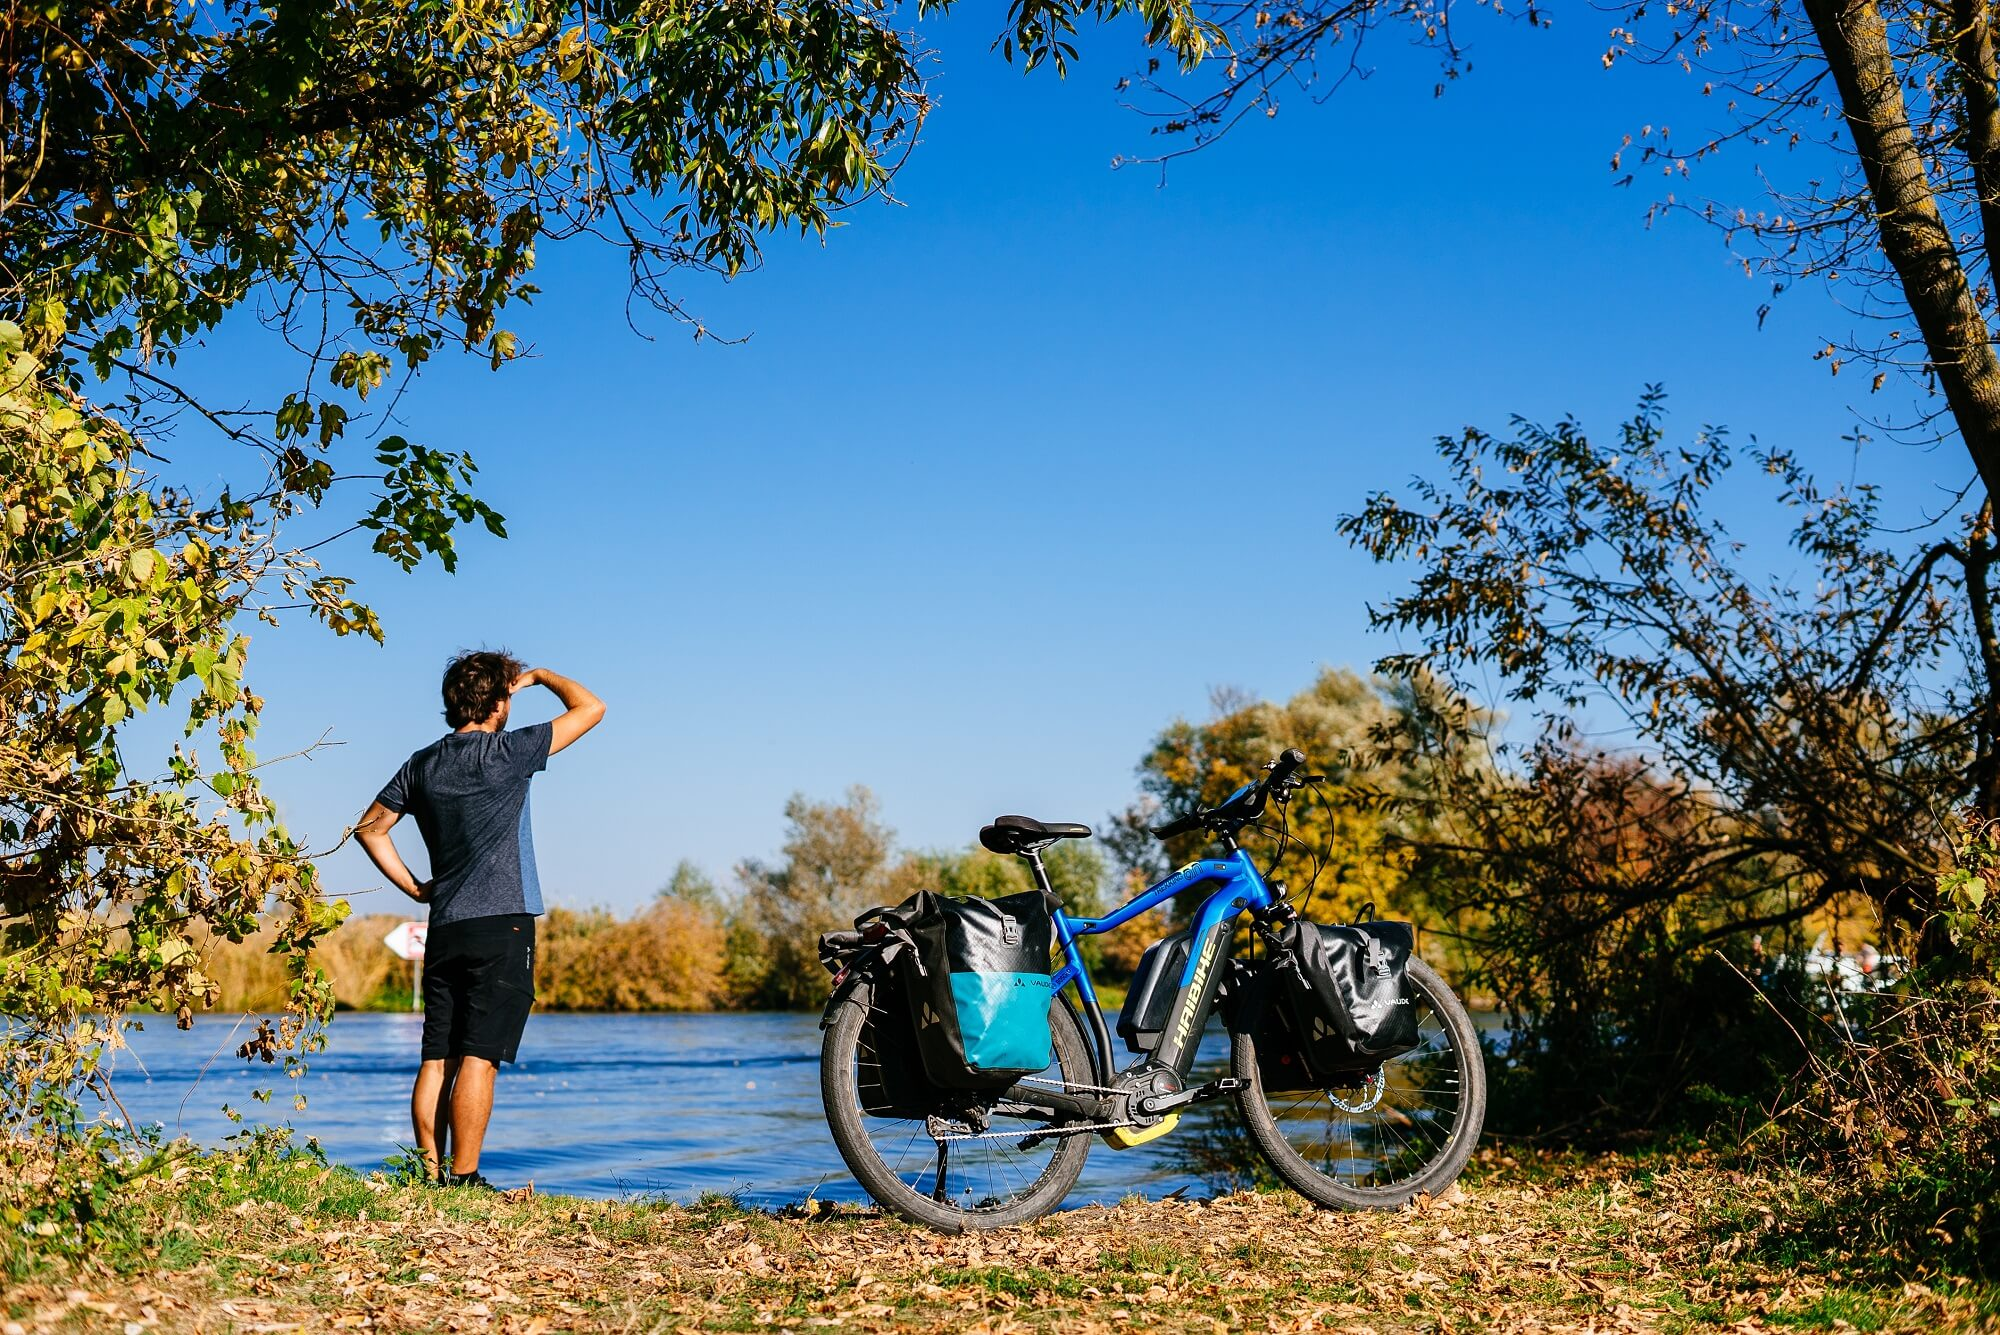 Haibike Hero Maximilian Semsch in front of a lake in autumn